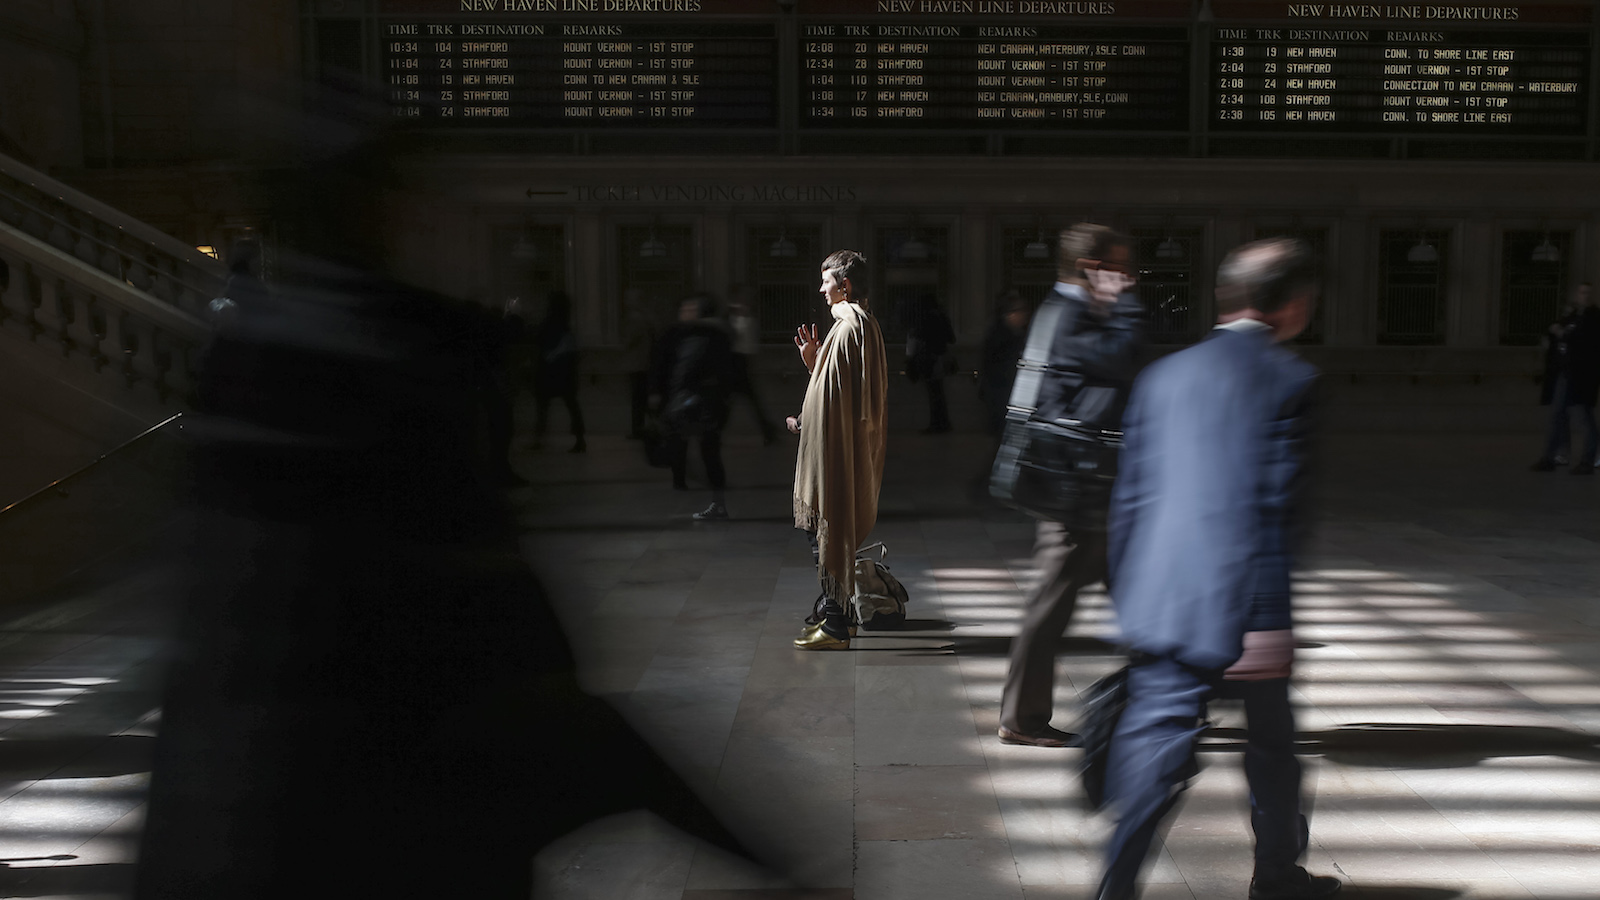 Resident Eliza Starbuck takes a moment to meditate while commuting through the main concourse of Grand Central Terminal, also known as Grand Central Station, in New York on April 3, 2014. REUTERS/Adrees Latif  (UNITED STATES - Tags: SOCIETY TRANSPORT) - RTR3JTNU